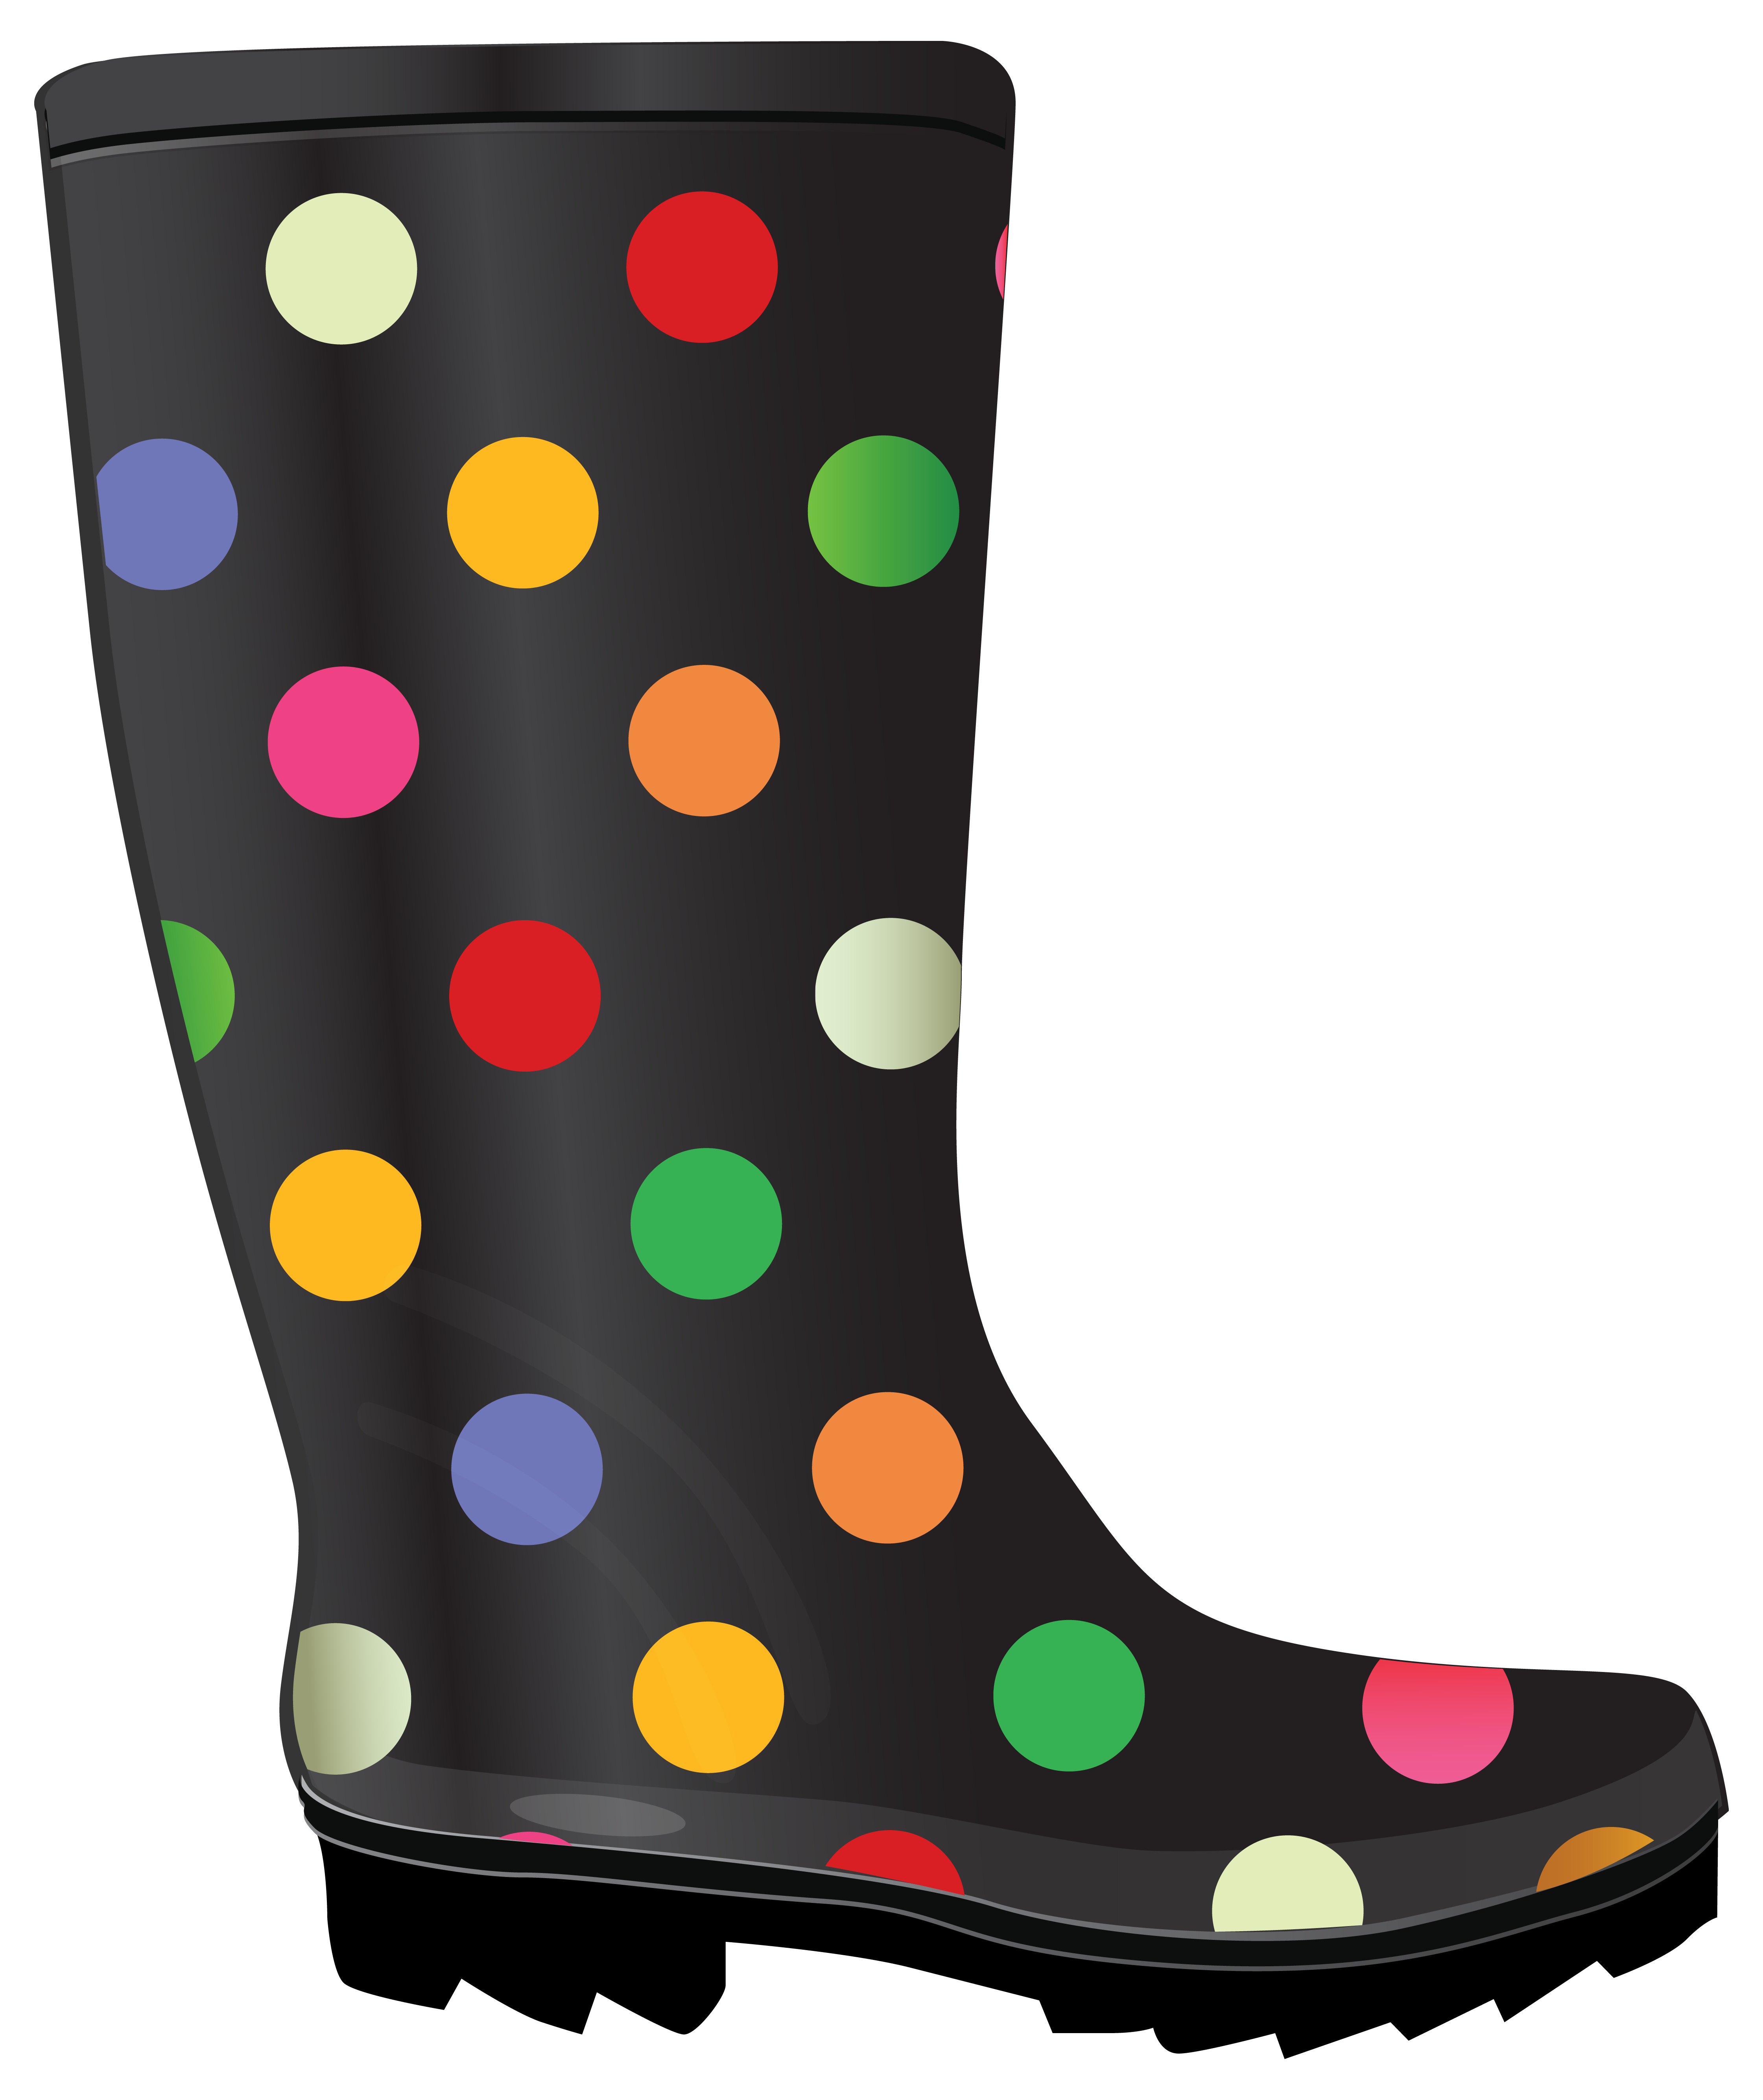 Dotted Rubber Boots PNG Clipart Image.